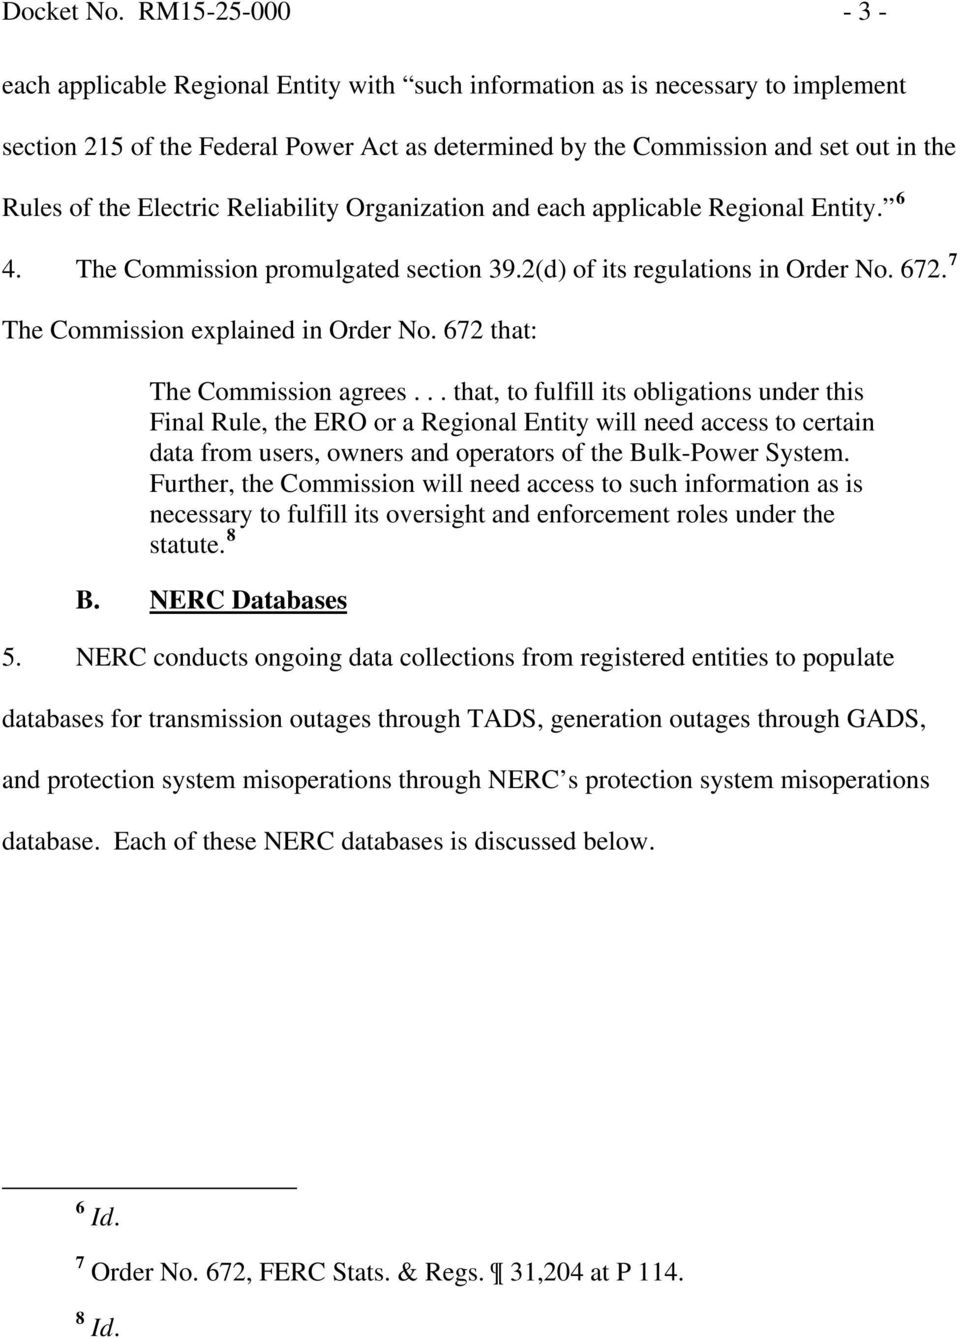 Electric Reliability Organization and each applicable Regional Entity. 6 4. The Commission promulgated section 39.2(d) of its regulations in Order No. 672. 7 The Commission explained in Order No.